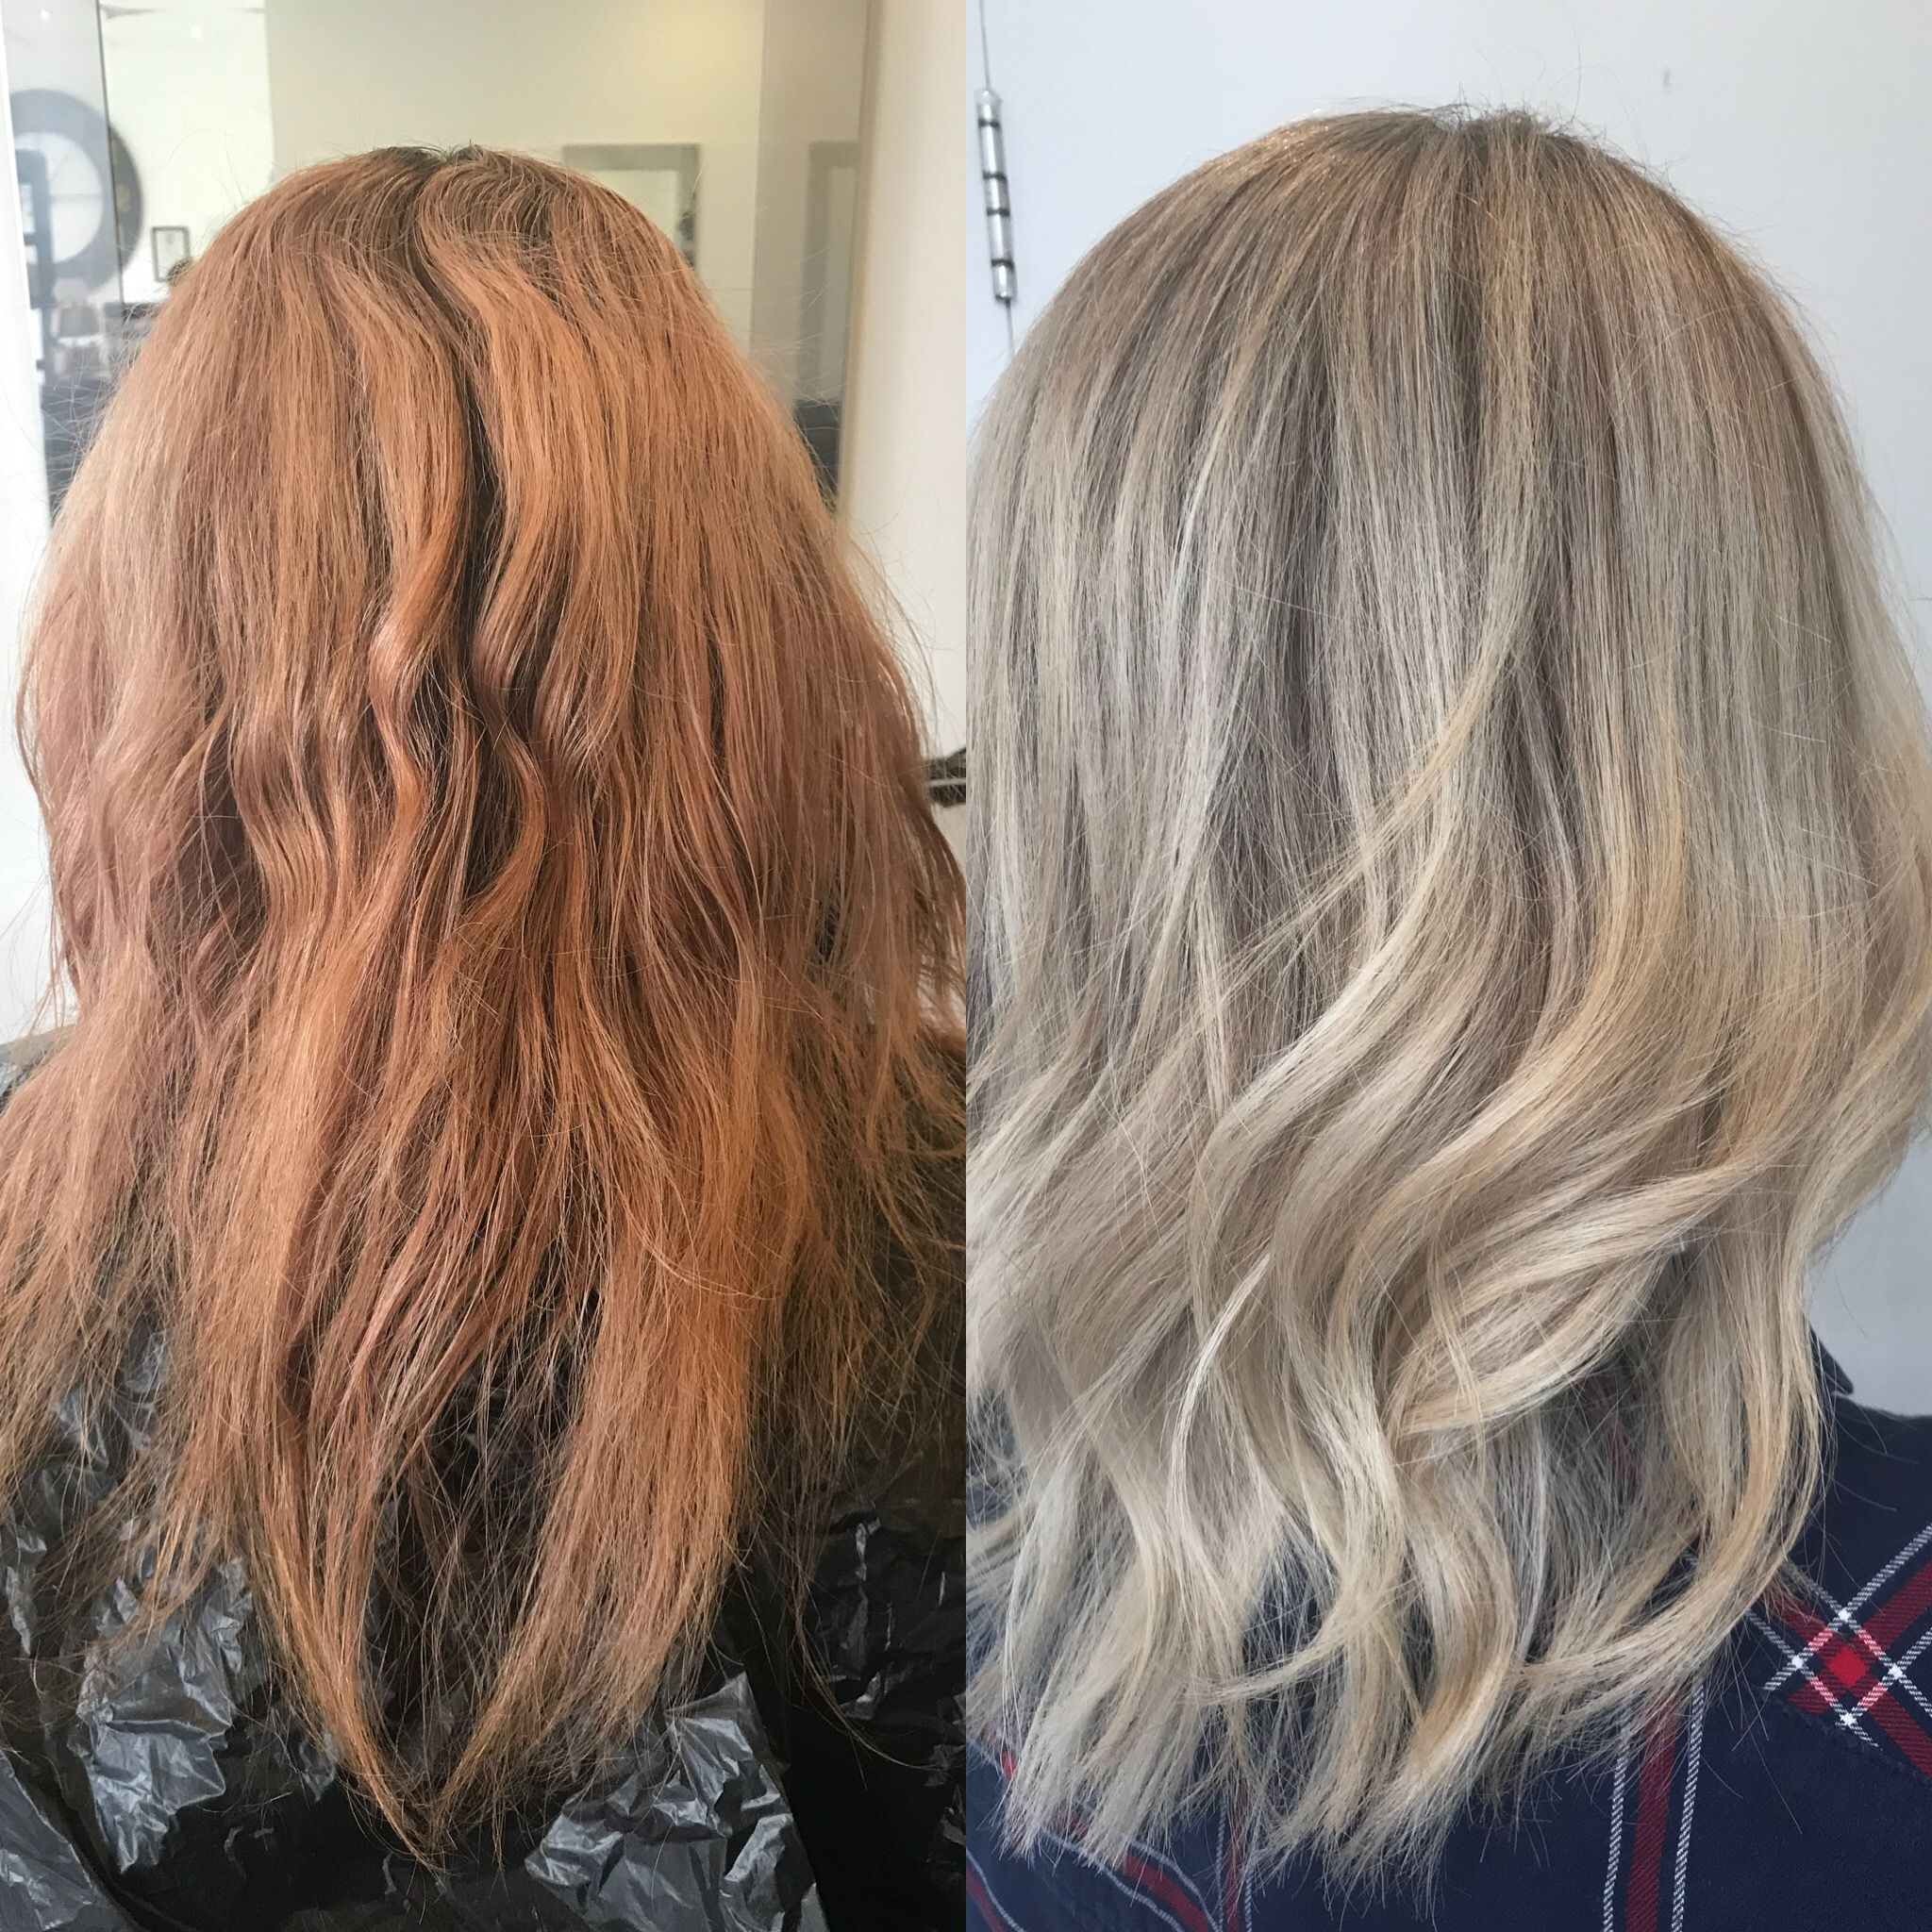 Transformation From Grown Out Ginger To Blonde Using Highlights